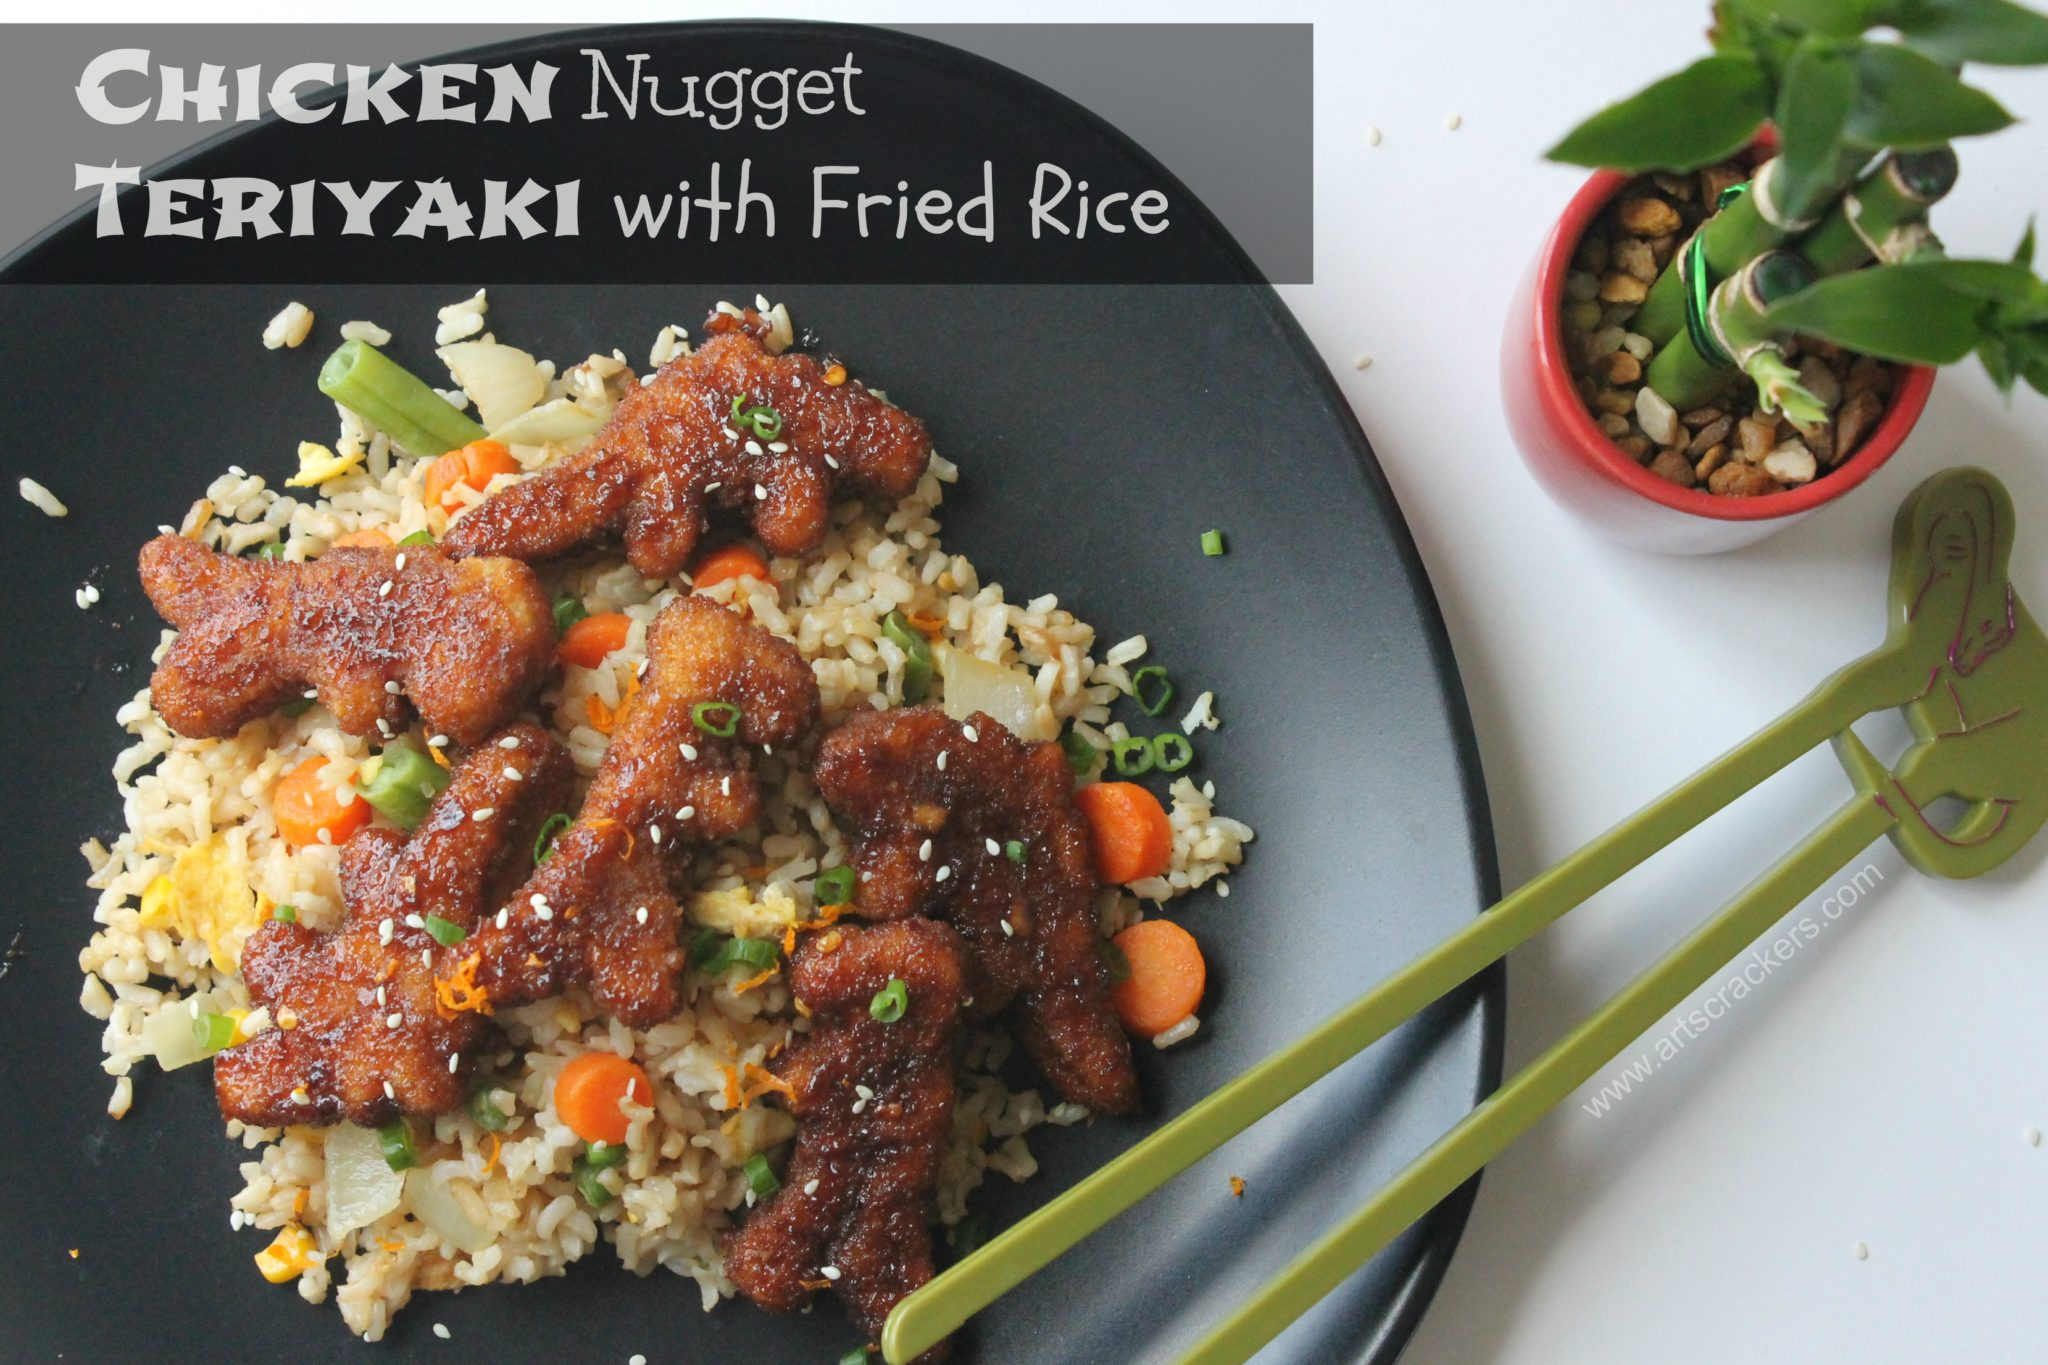 Chicken Nugget Teriyaki and Fried Rice | Family-Friendly Recipe